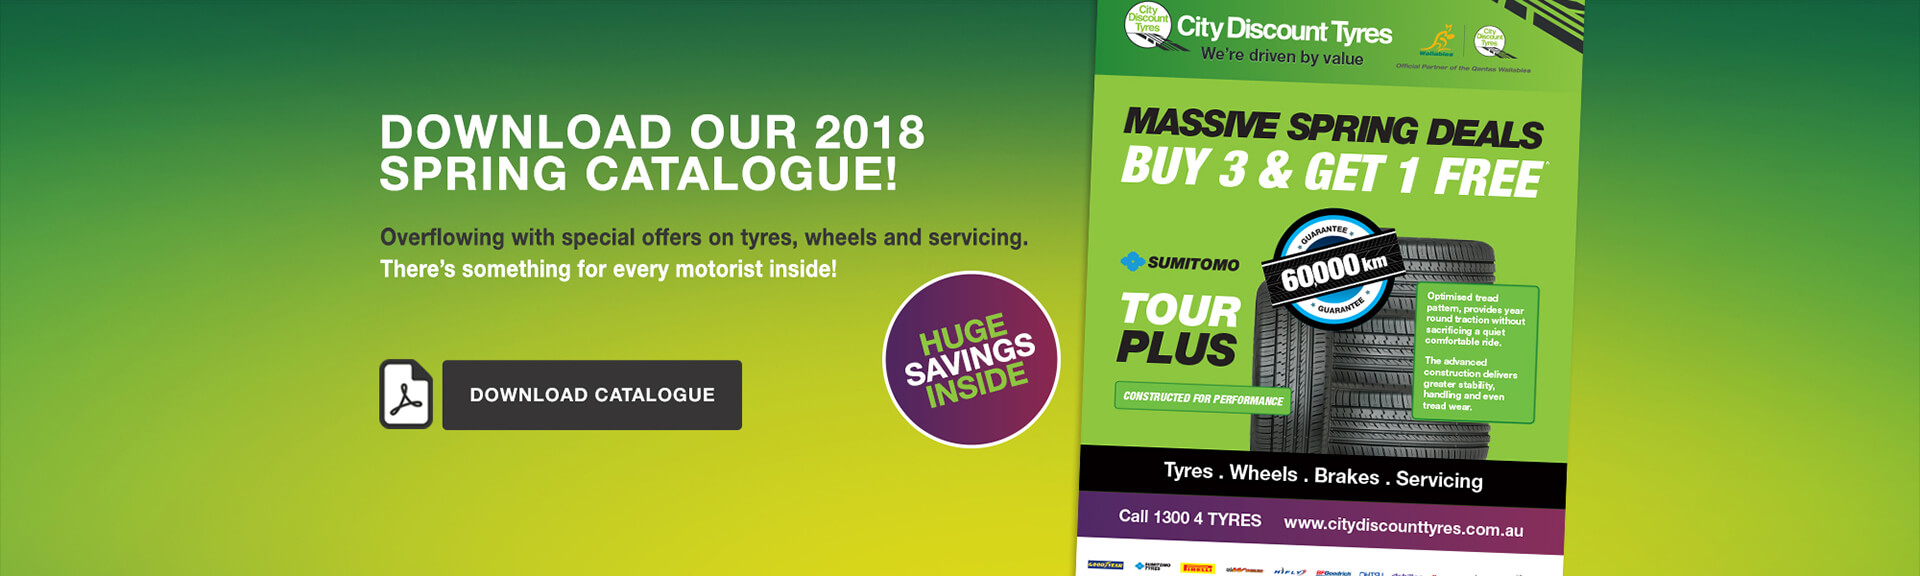 City Discount Tyres Spring Catalogue